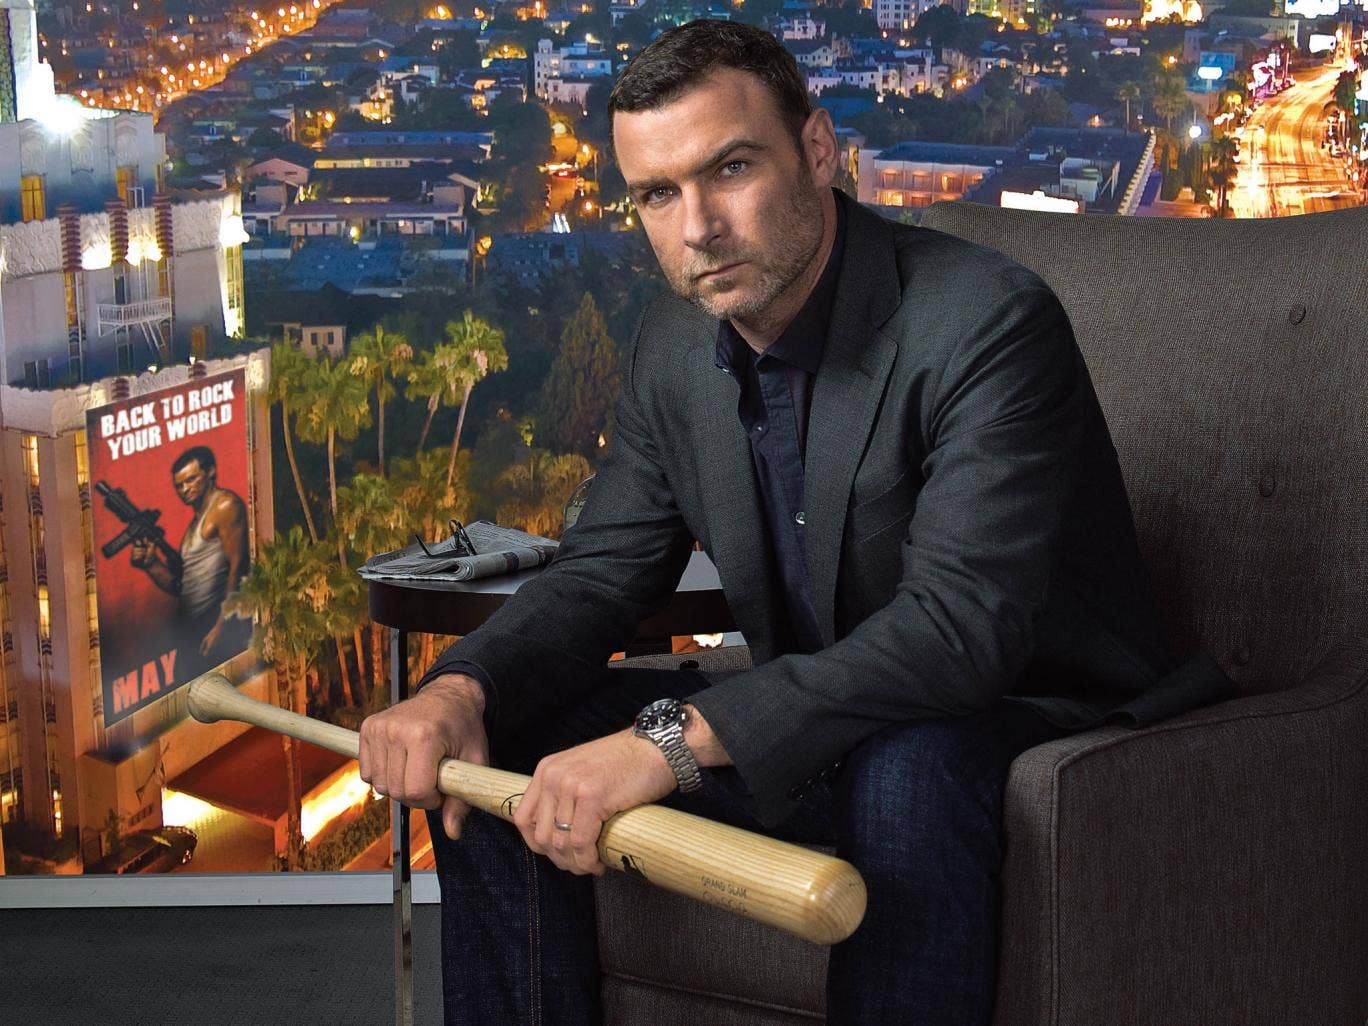 Liev Schreiber as Ray Donovan, who was a 'fixer' in Hollywood